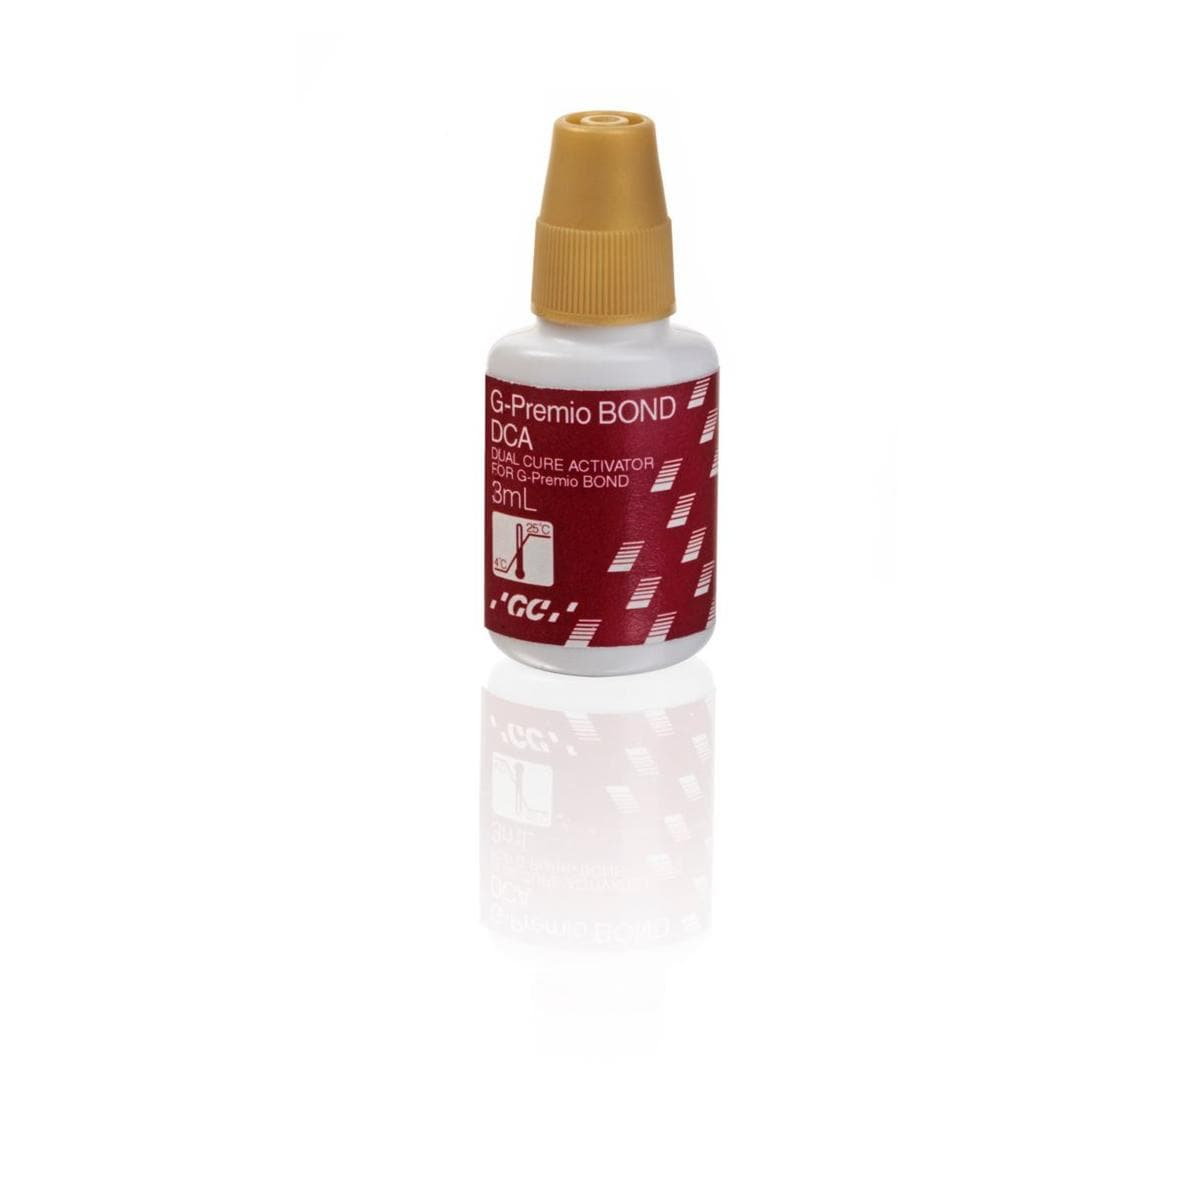 G-Premio Bond DCA Bottle 3ml